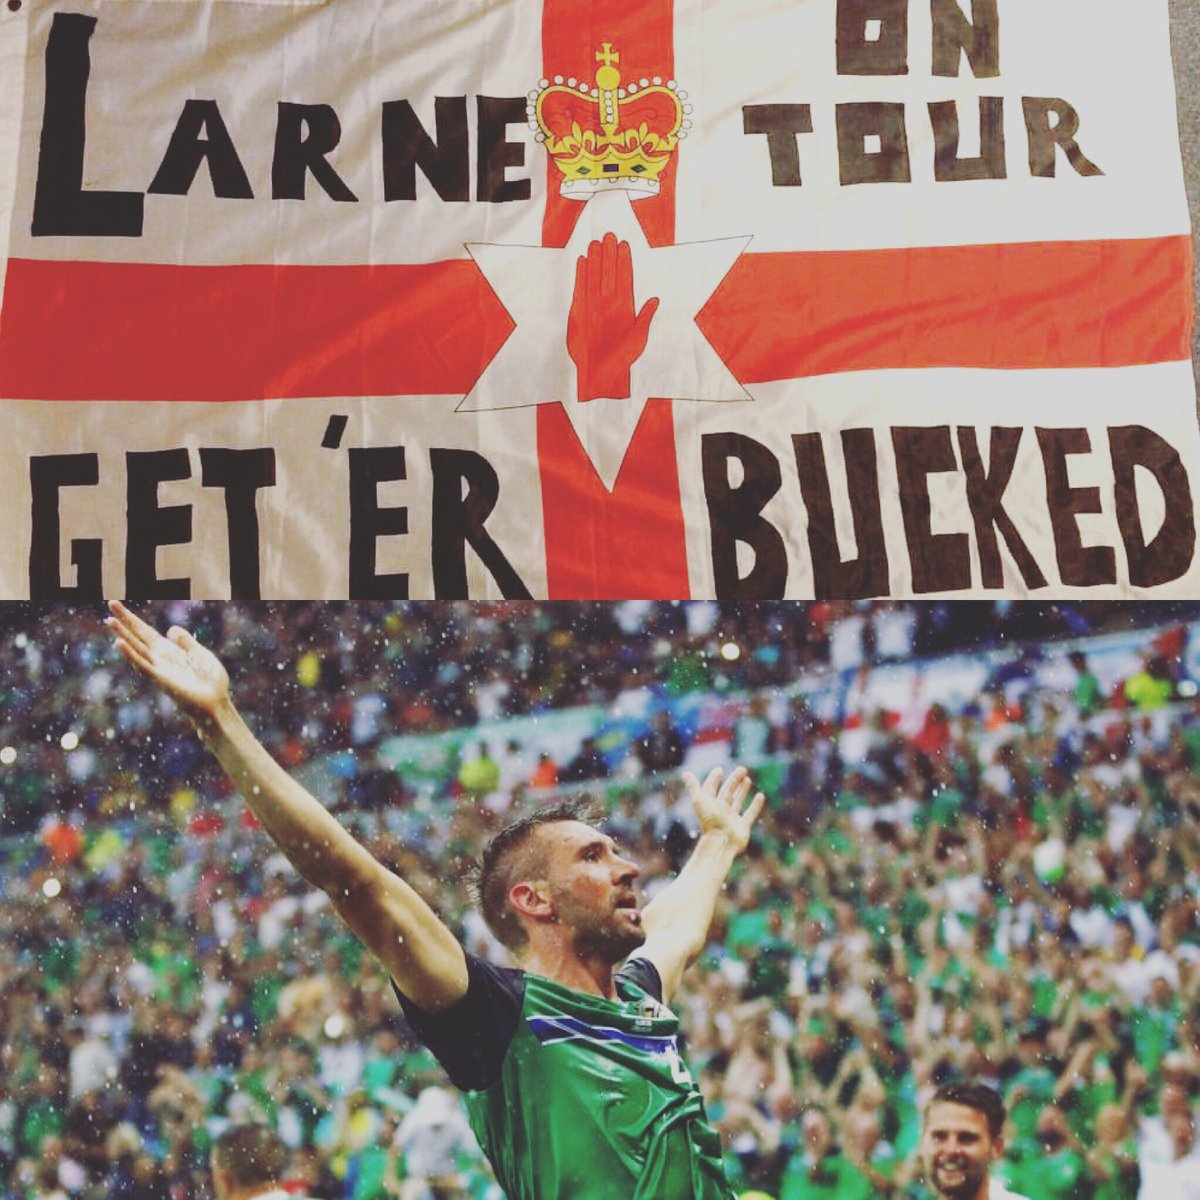 The best we country in the world, Mon Norn Iron, They have Gareth Bale We have @G23mcauley YEEEEOW keep er lit